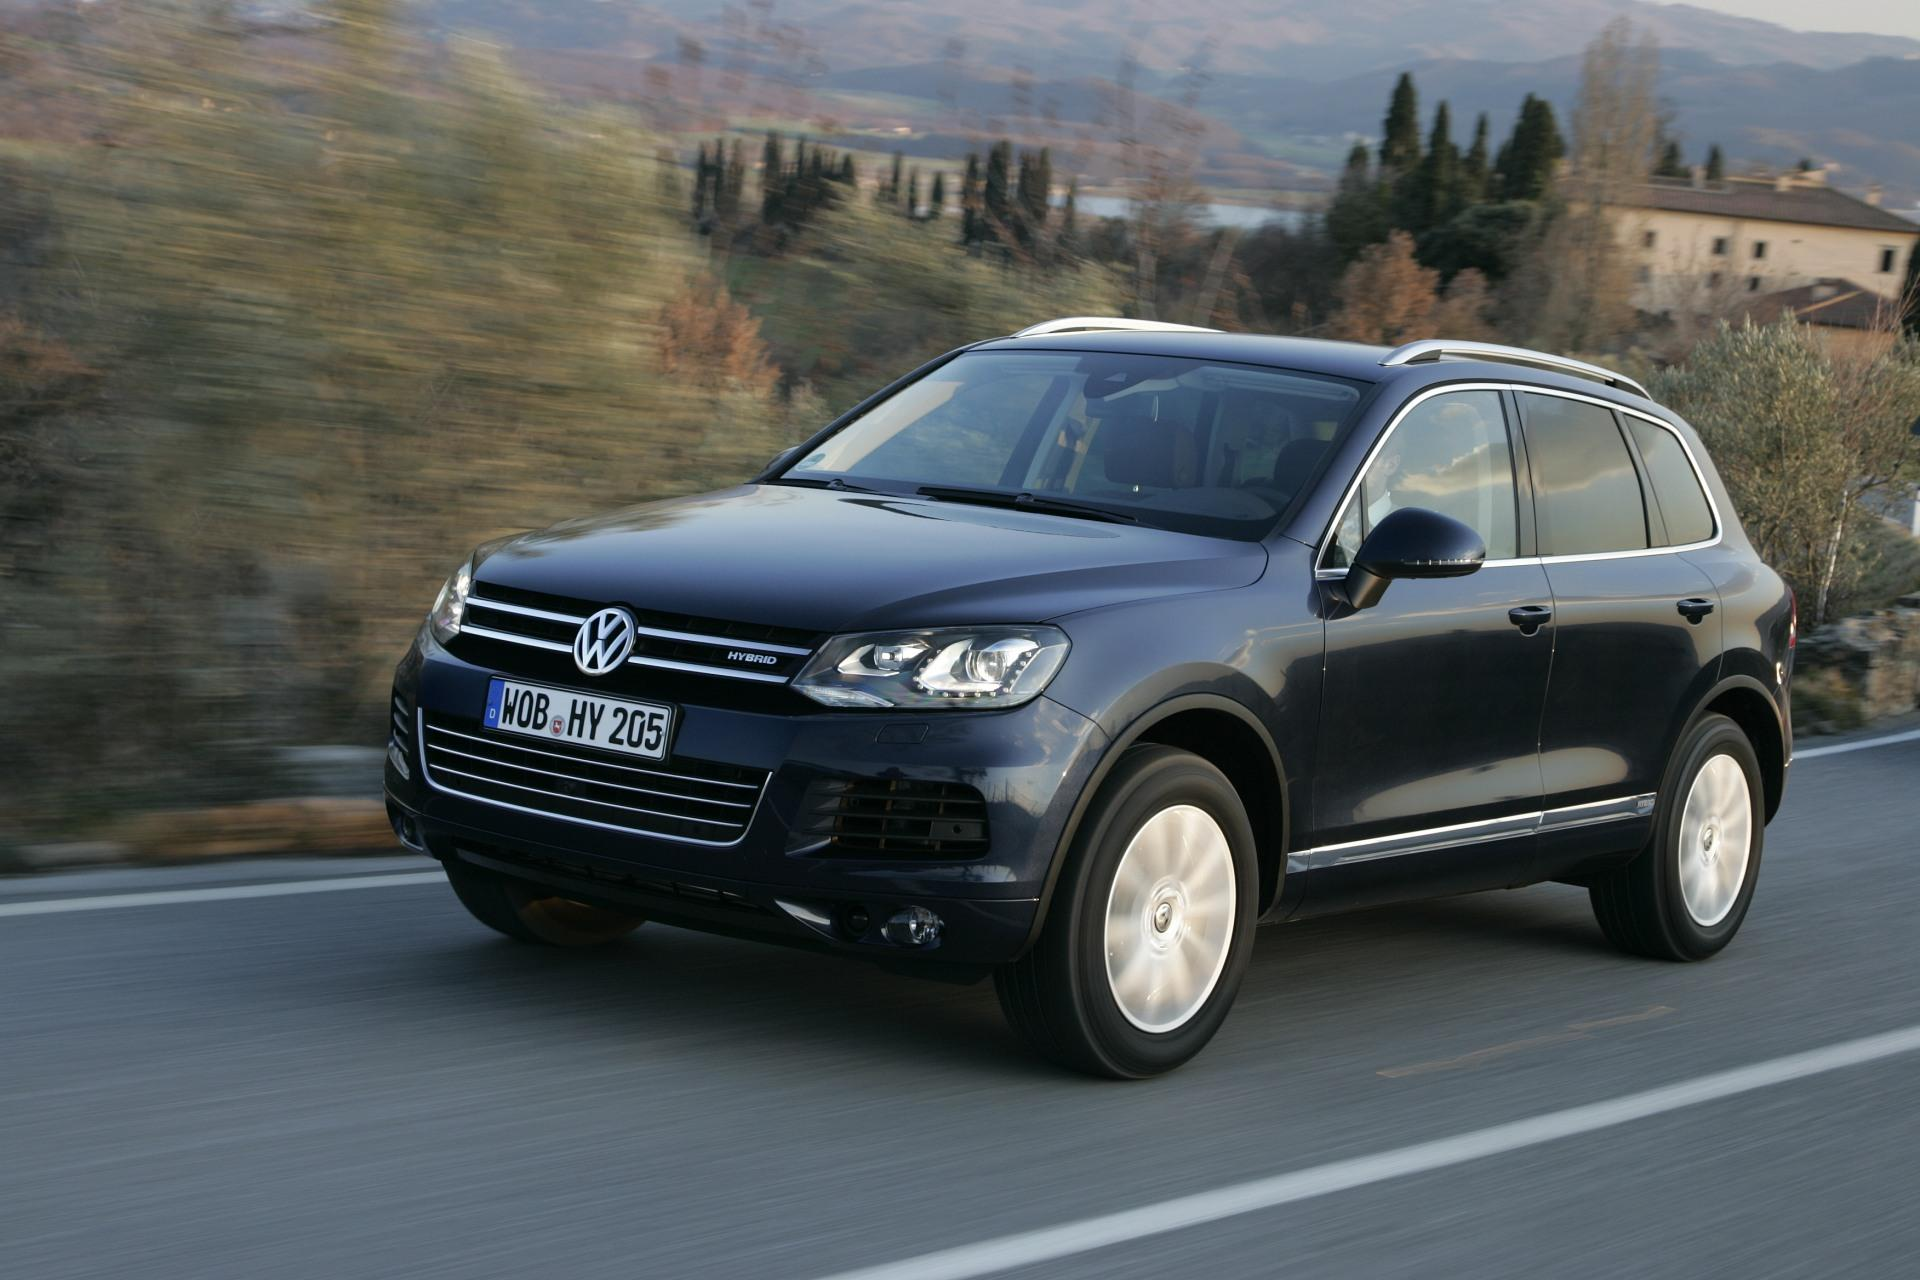 2011 volkswagen touareg images photo 2011 vw touareg suv. Black Bedroom Furniture Sets. Home Design Ideas